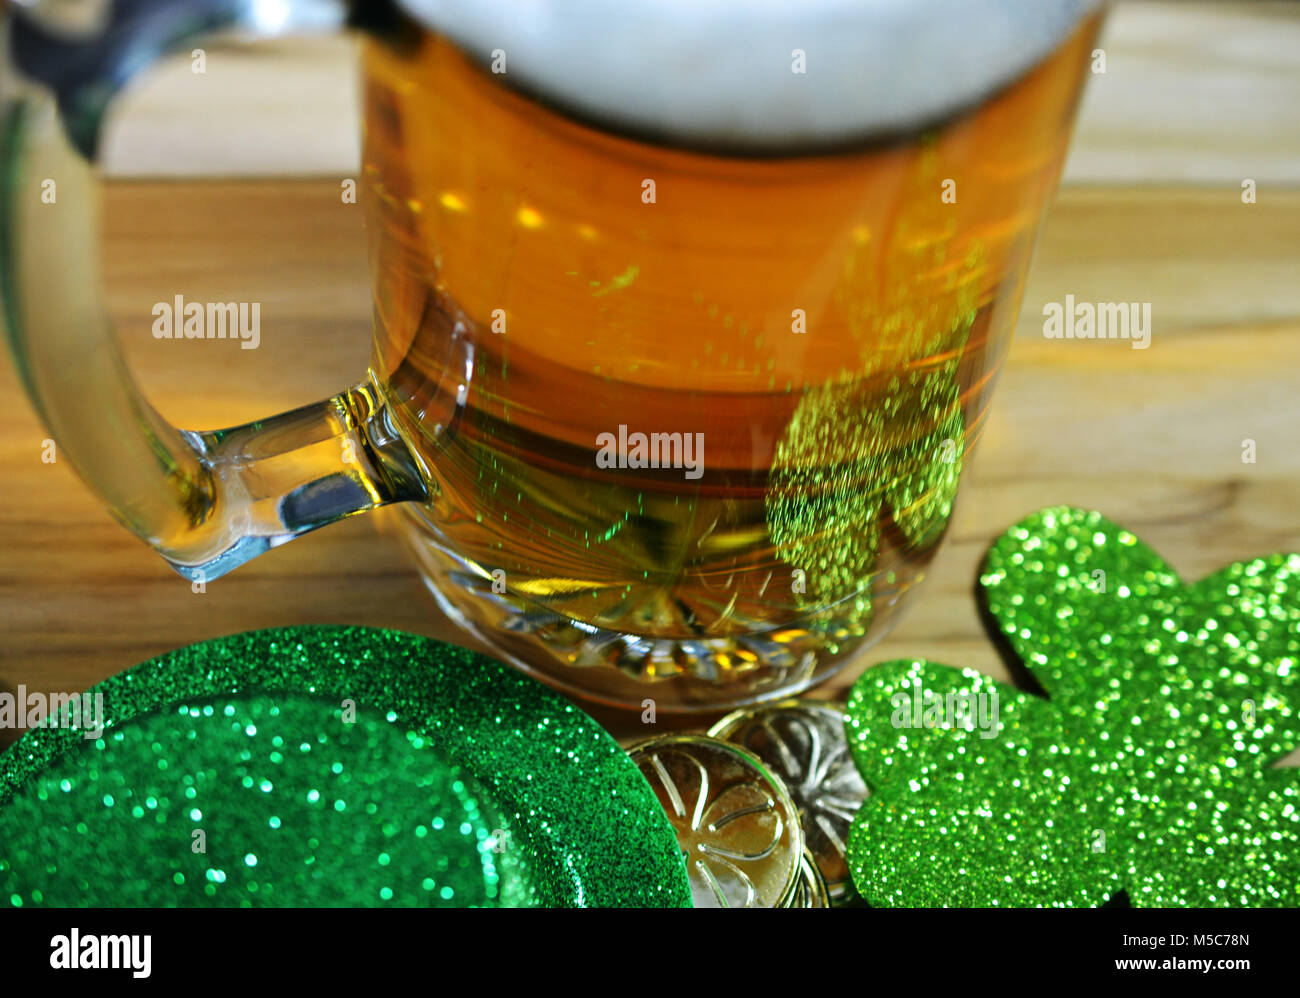 St Patricks Day Glass Beer Stien Filled with Beer showing partial head of foam. Green Top hat, green clo0ver, gold - Stock Image